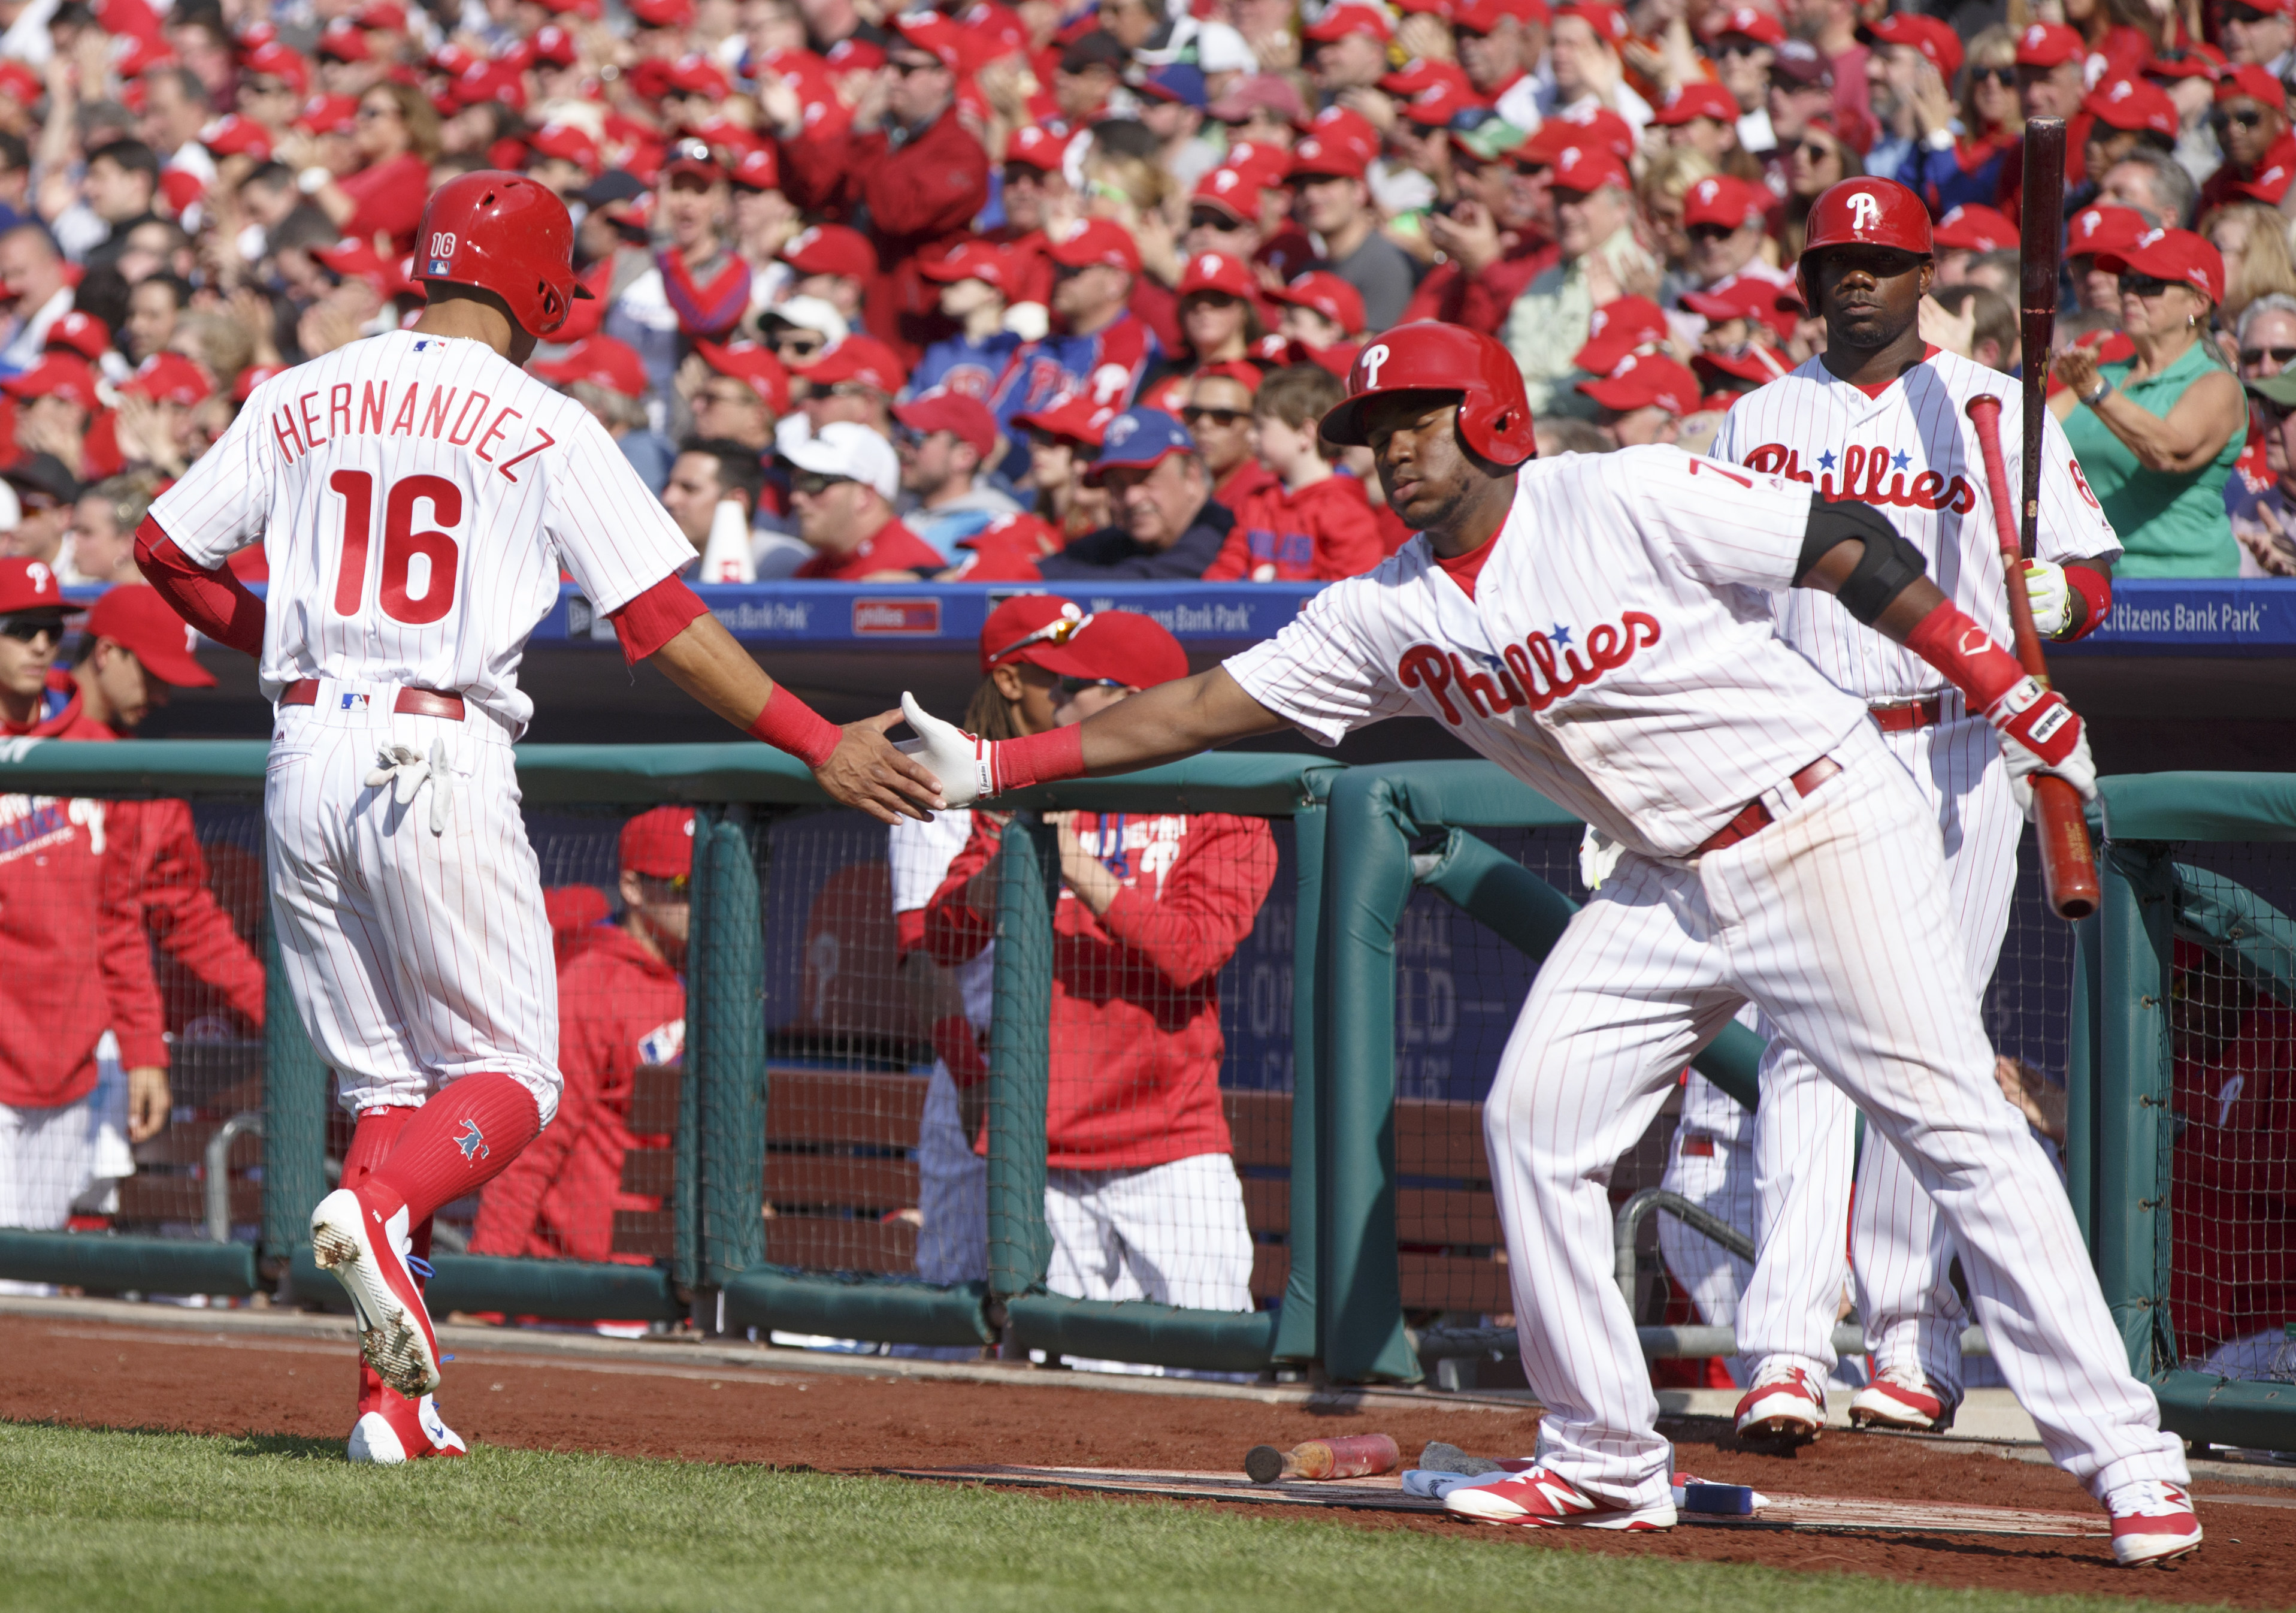 Philadelphia Phillies' Maikel Franco (7) reaches out to congratulate Cesar Hernandez (16) on scoring a run on the single by Odubel Herrera during the first inning of an opening day baseball game against the San Diego Padres, Monday, April 11, 2016, in Phi